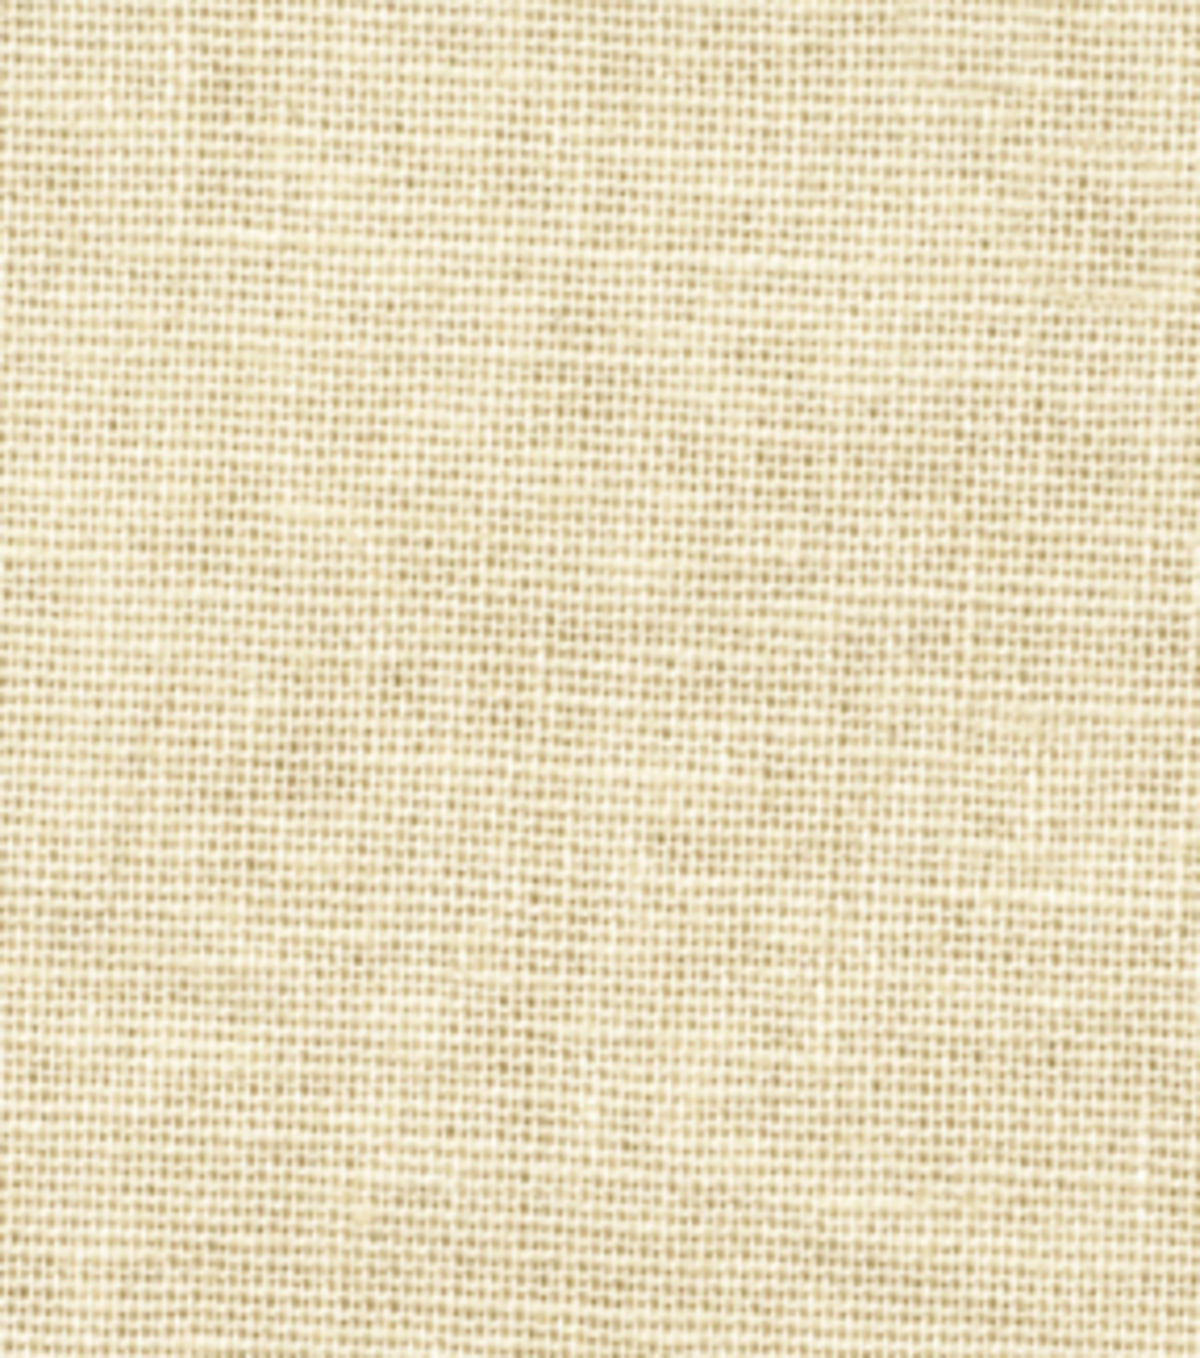 Home Decor 8\u0022x8\u0022 Fabric Swatch-Jaclyn Smith Jigsaw-Alabaster